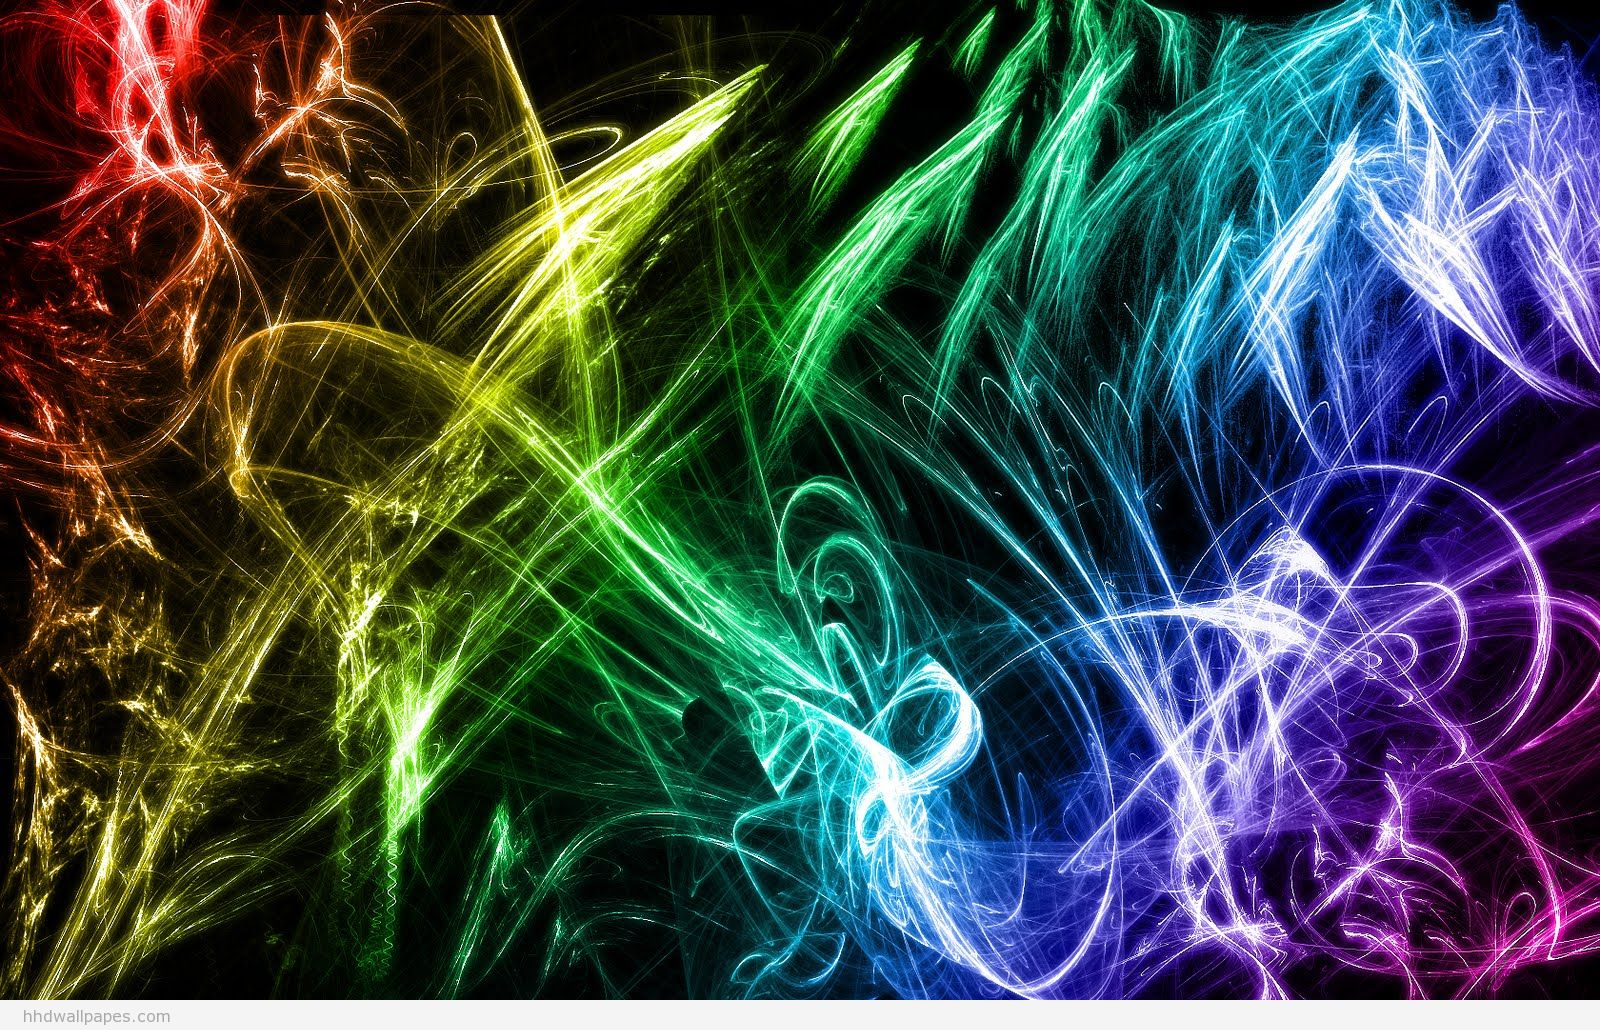 HD Wallpapers Colorful Abstract Desktop Backgrounds Full Widescreen 1600x1030